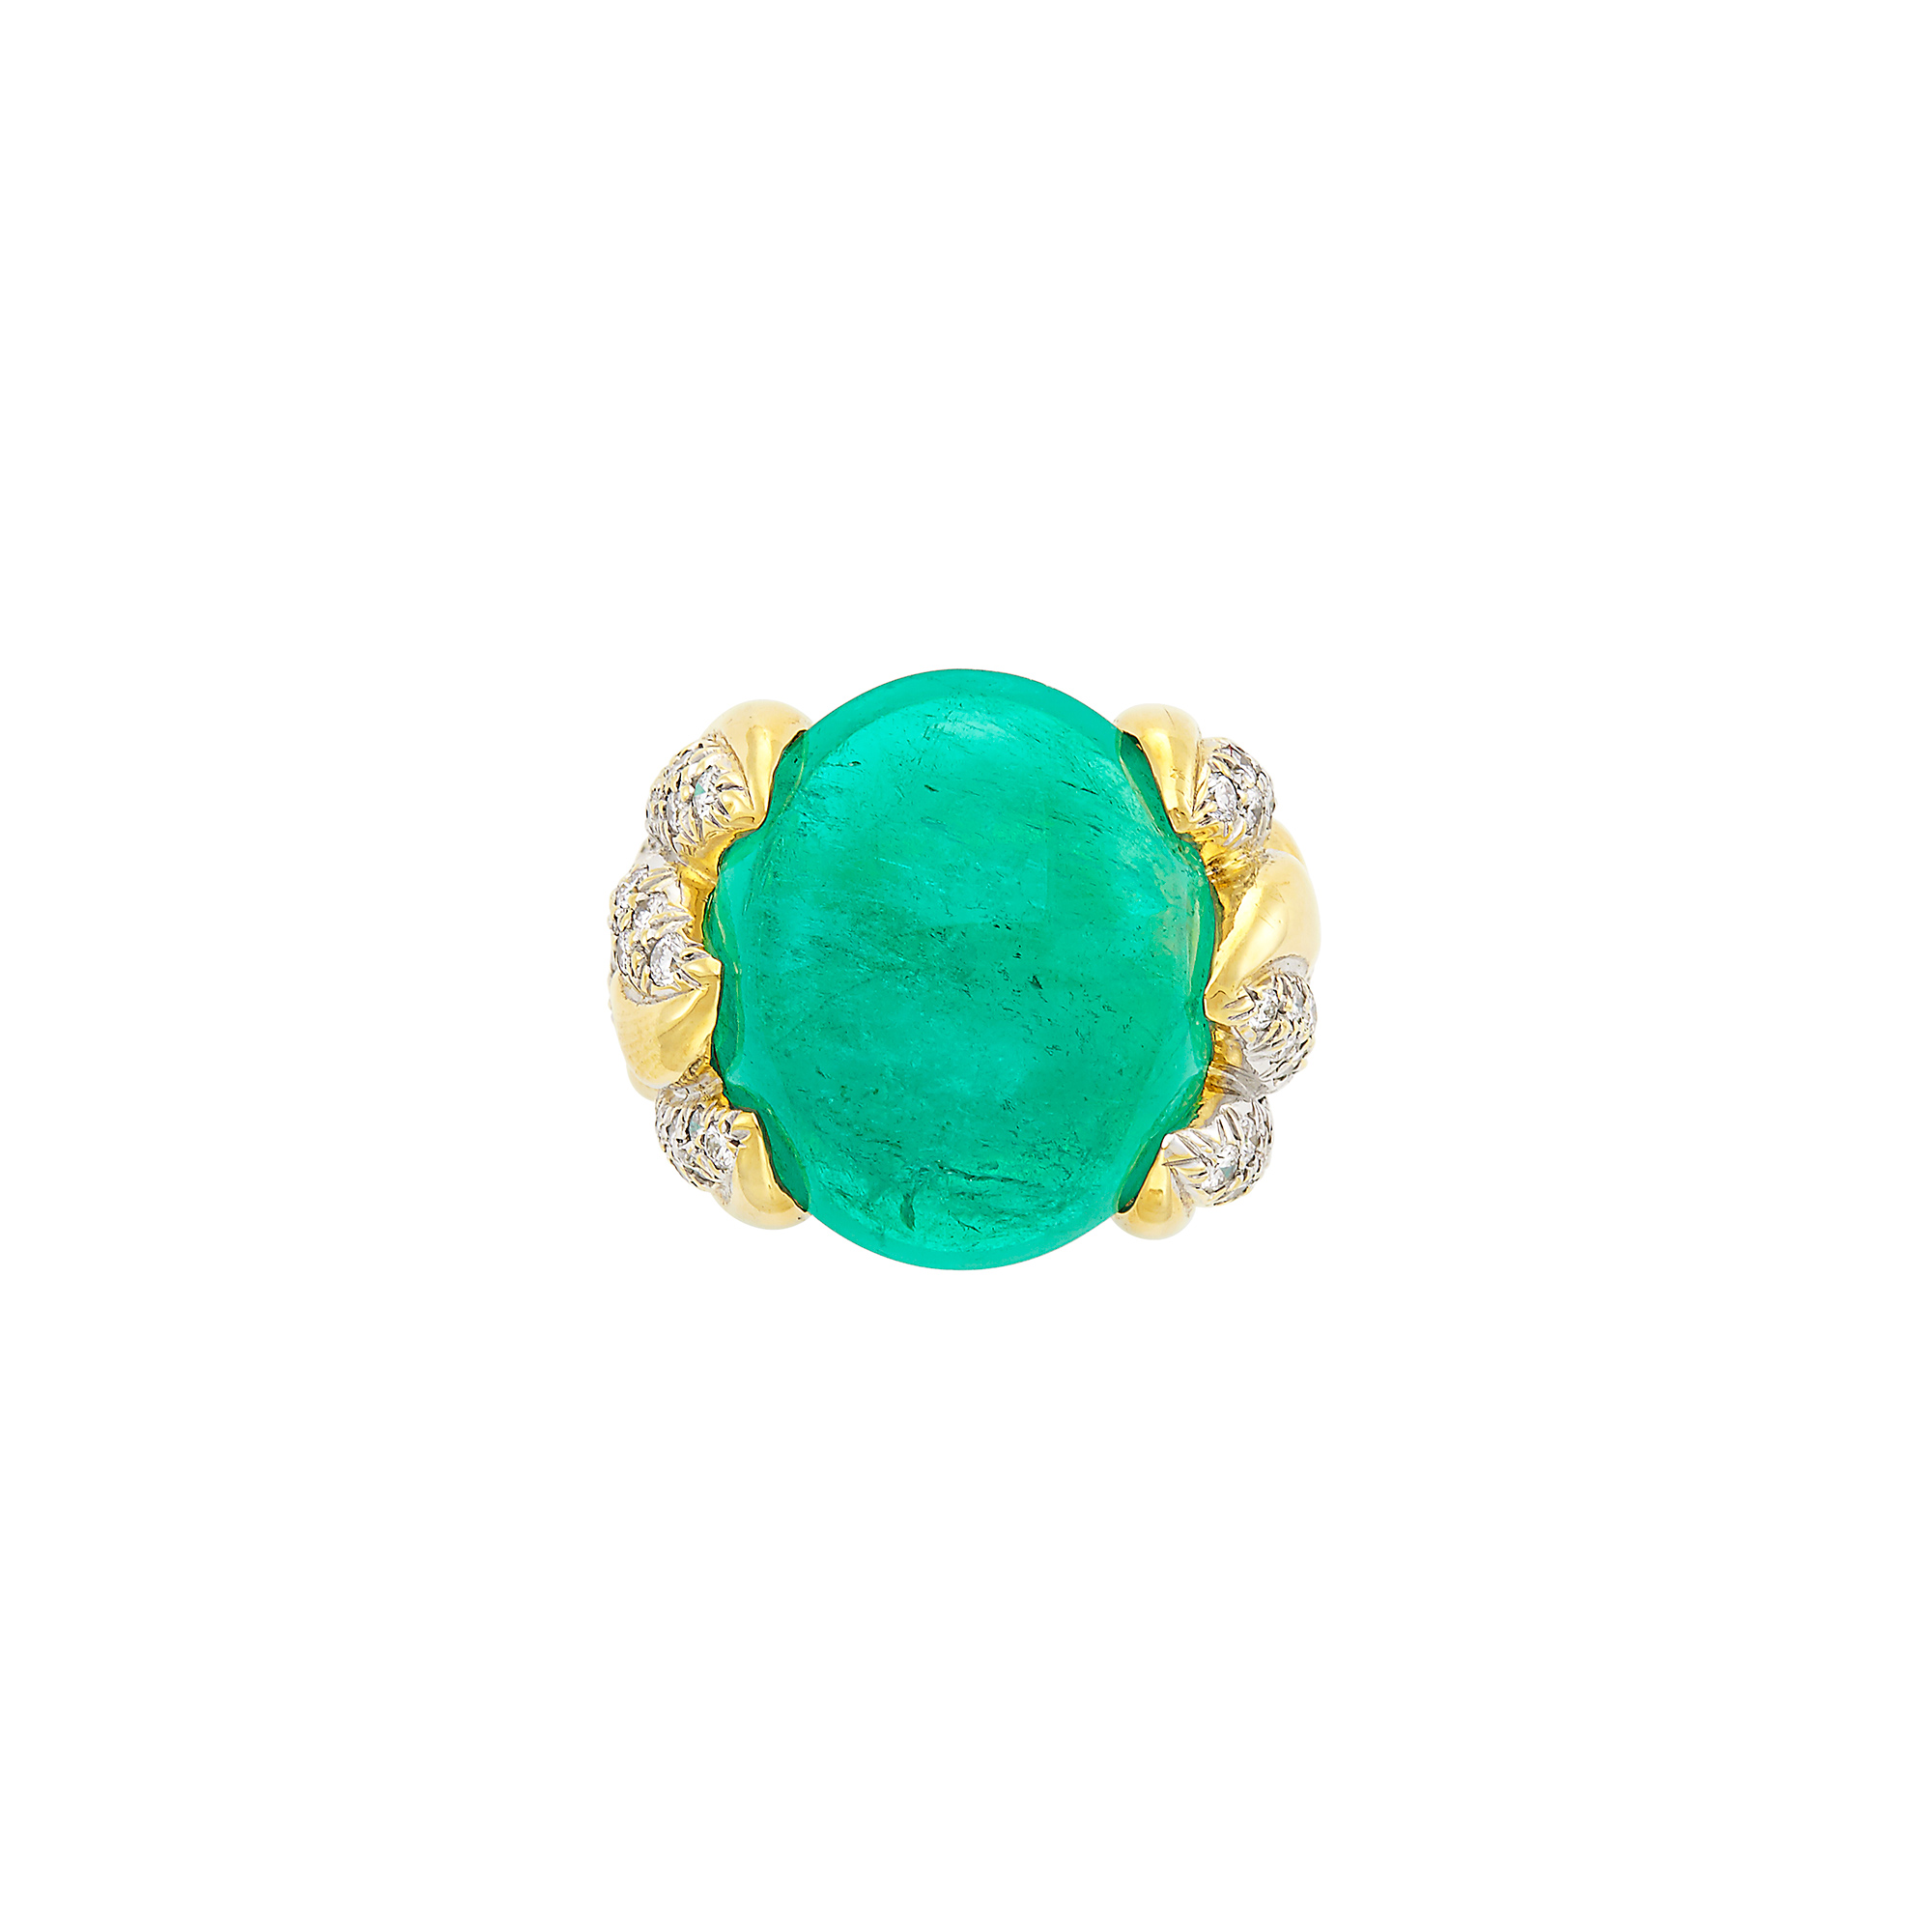 Lot image - Two-Color Gold, Cabochon Emerald and Diamond Ring, Marlene Stowe